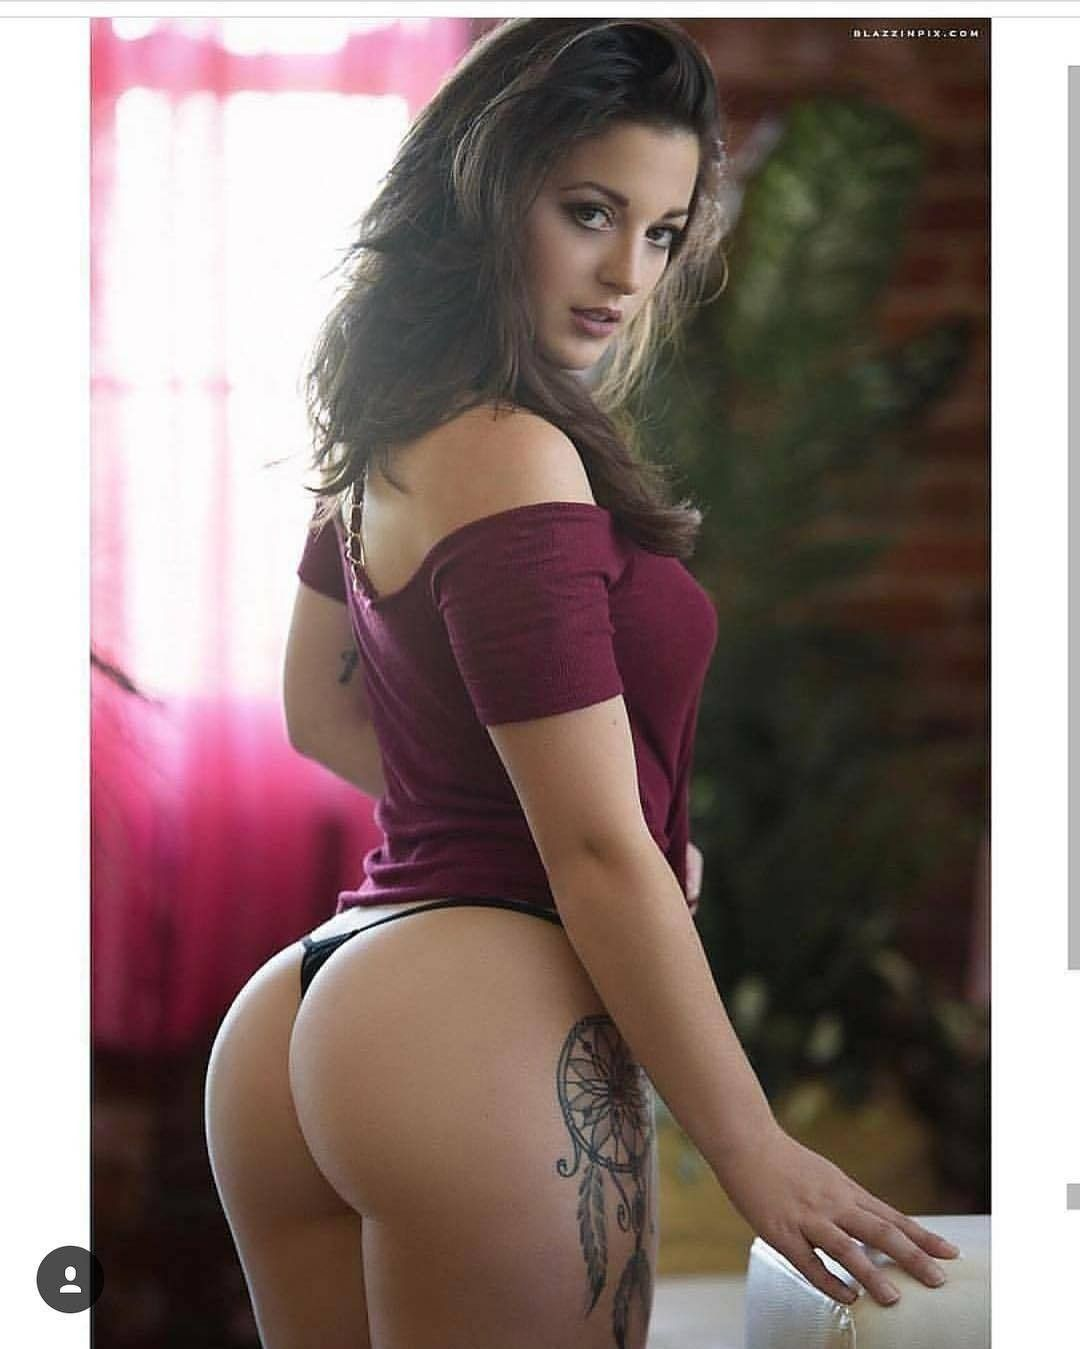 pinvictorpaz on awesome ass | pinterest | tattoo, curves and girls